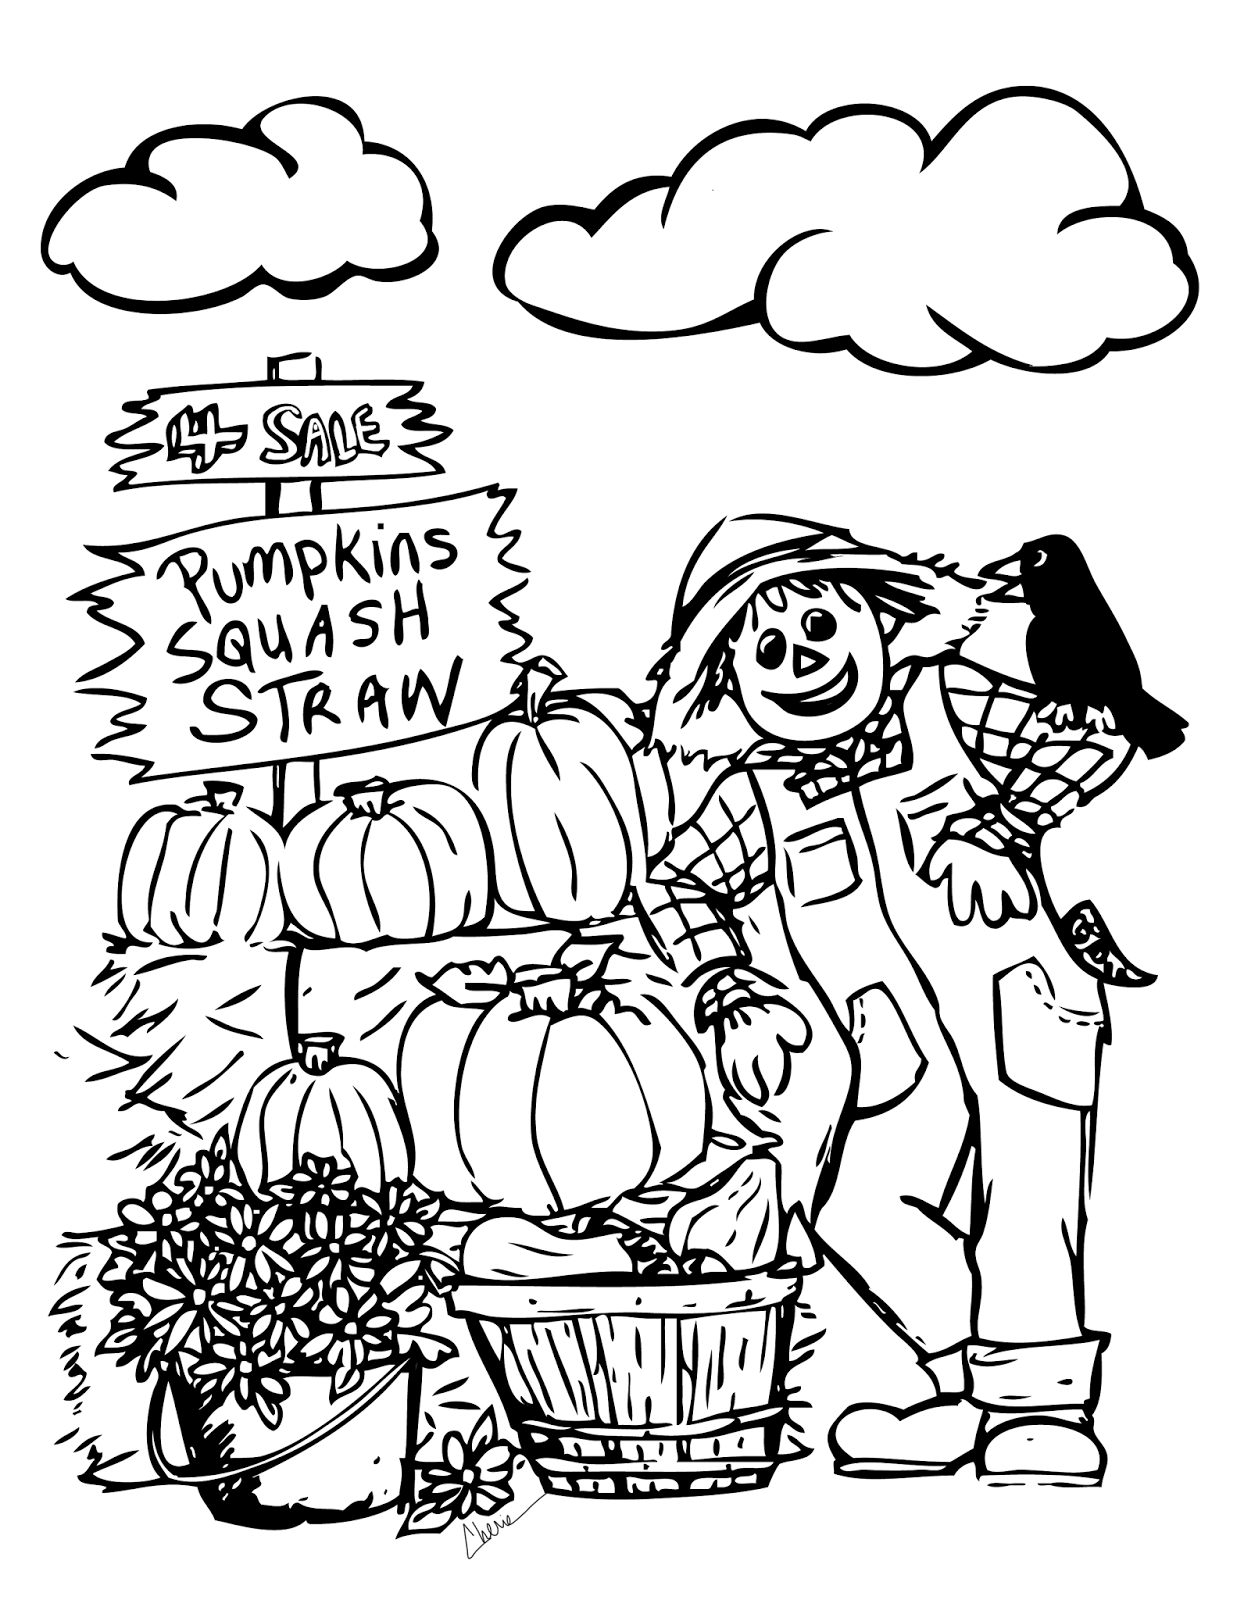 Pumpkin Patch Coloring Pages Printable - Coloring Home